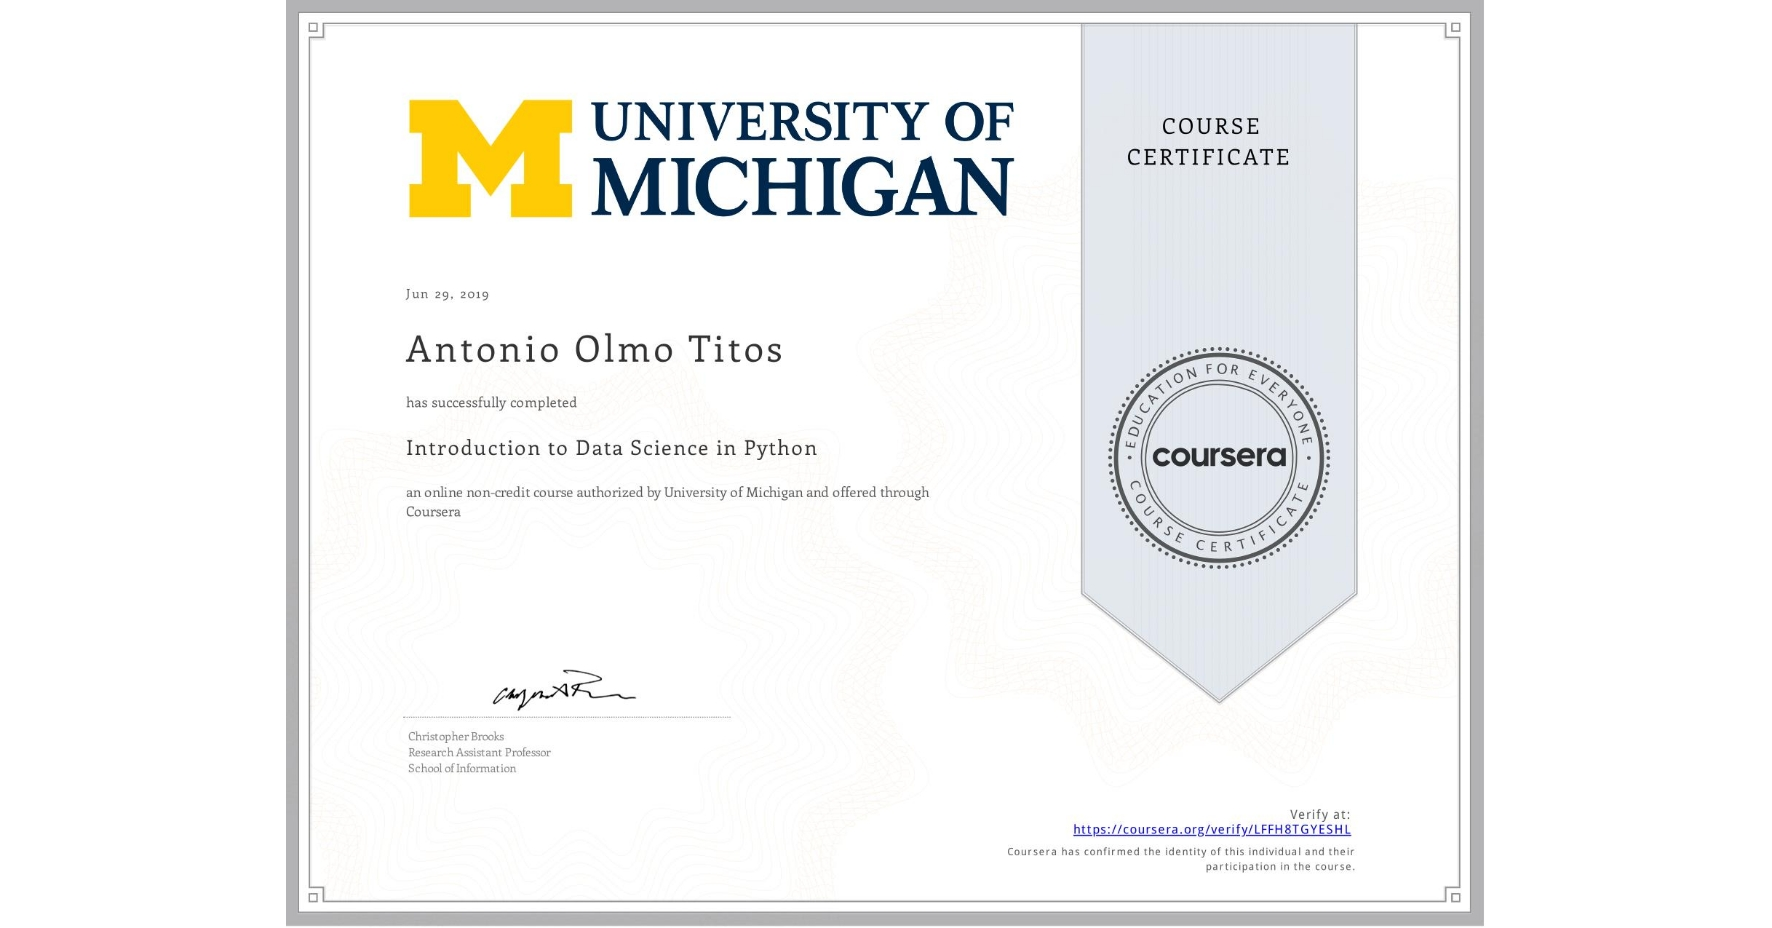 View certificate for Antonio Olmo Titos, Introduction to Data Science in Python, an online non-credit course authorized by University of Michigan and offered through Coursera